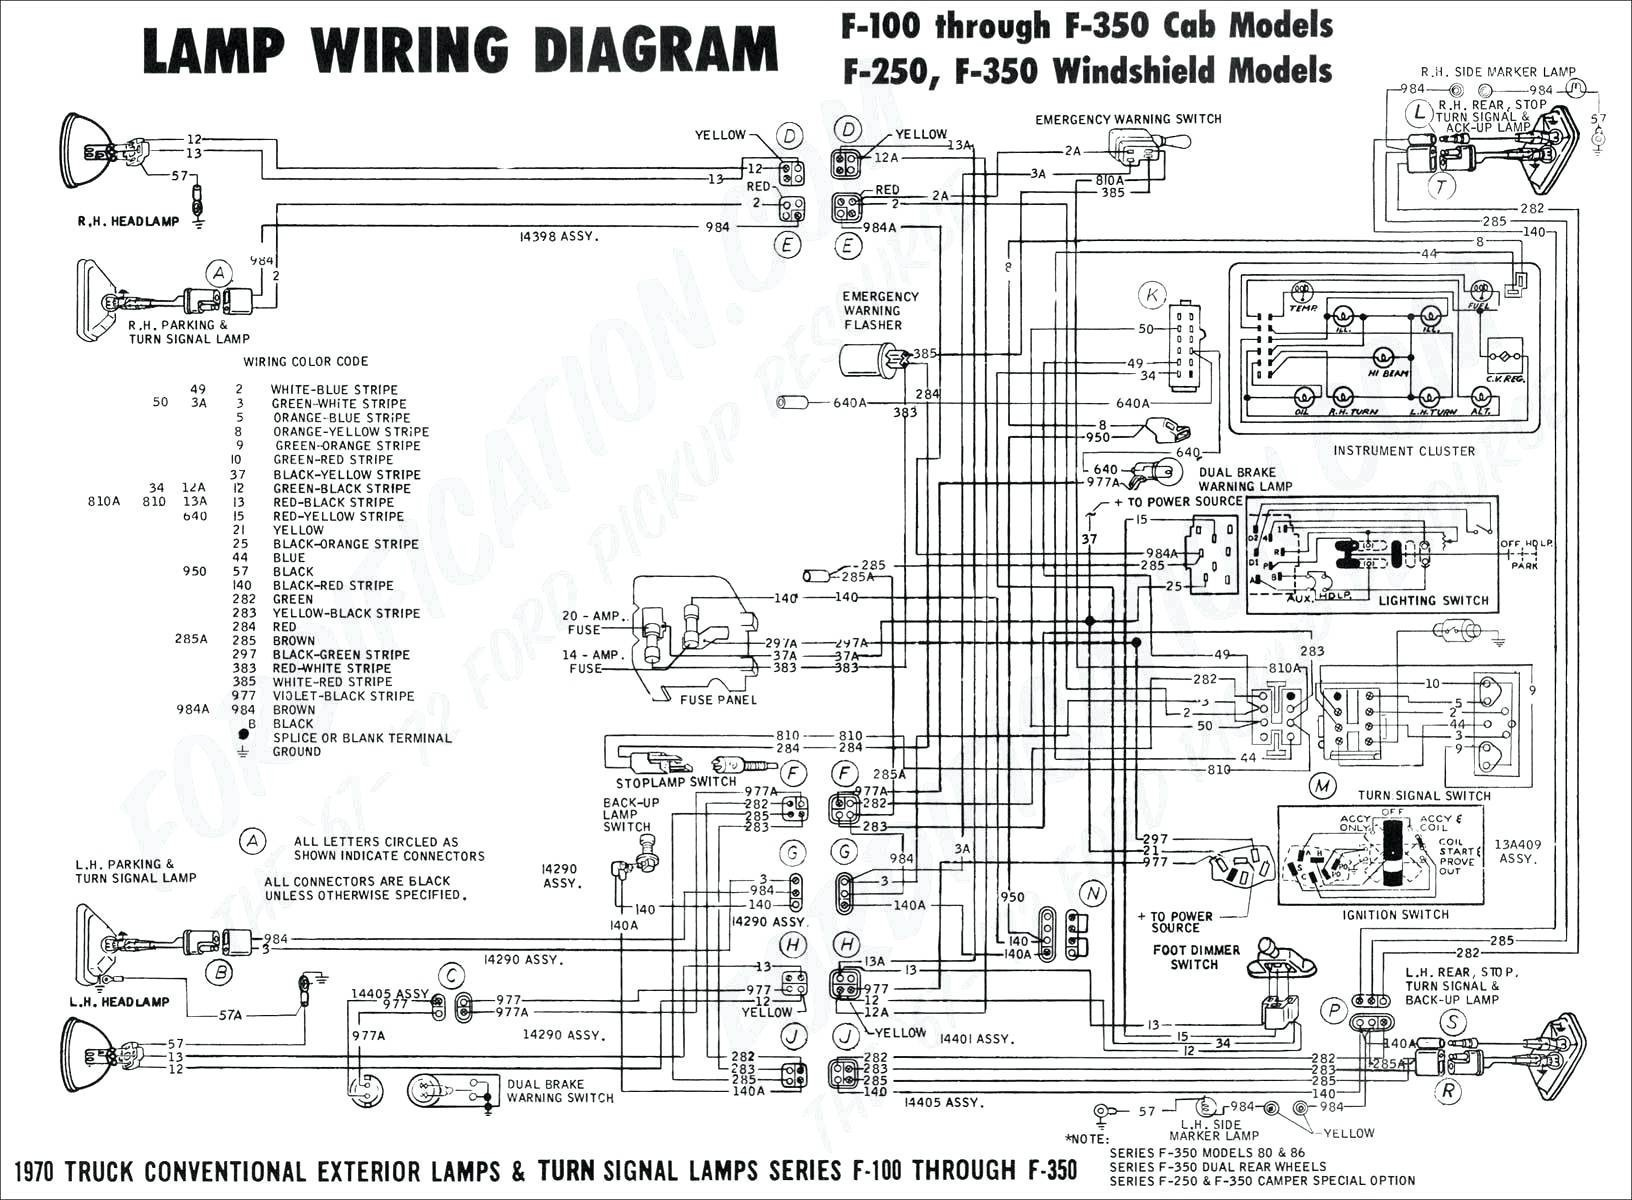 Wiring Diagram Gallery: Leviton 3 Way Led Dimmer Switch